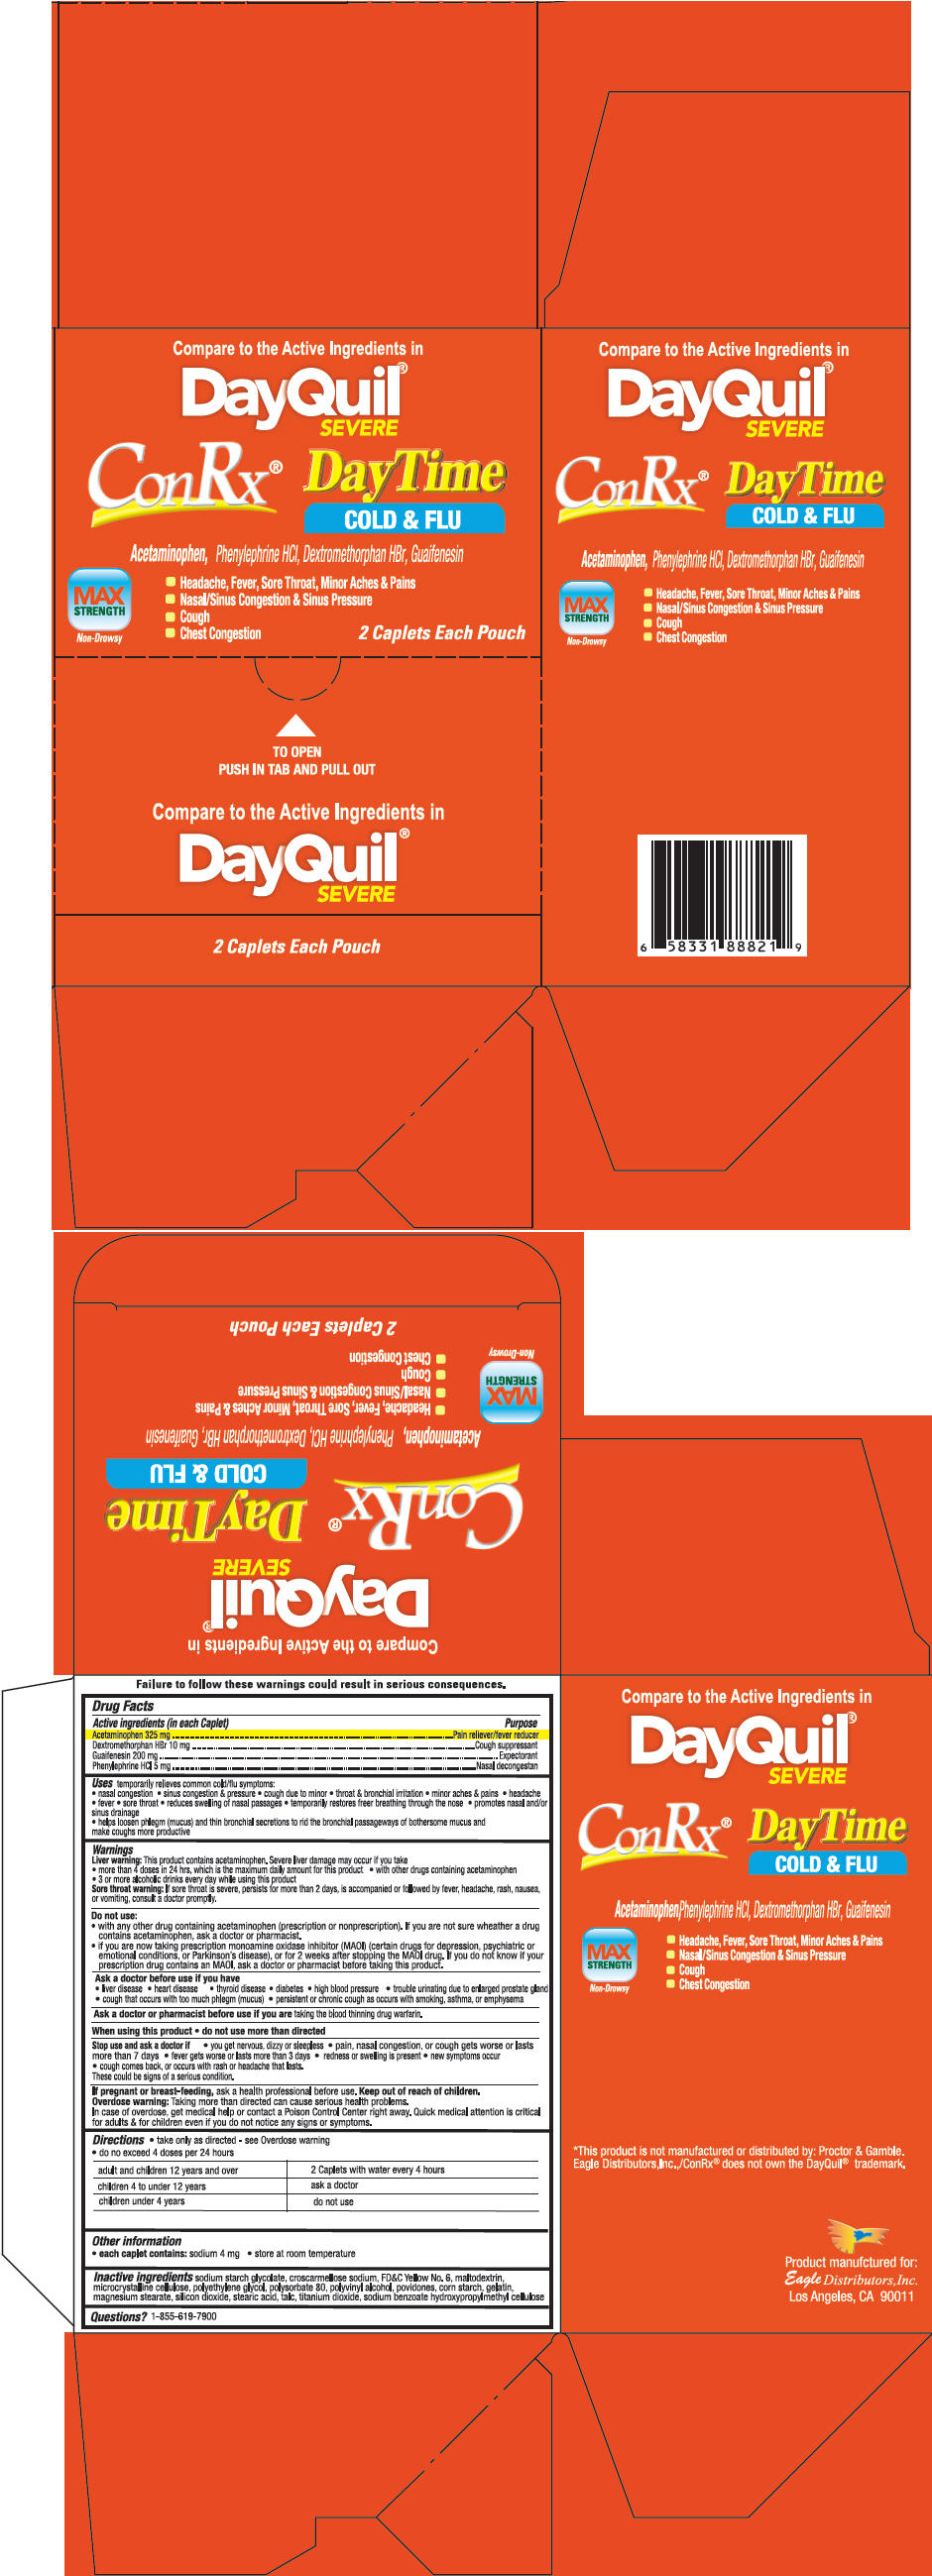 Conrx Daytime (Phenylephrine Hydrochloride, Acetaminophen, Dextromethorphan Hydrobromide, And Guaifenesin) Tablet [Eagle Distributors,inc]